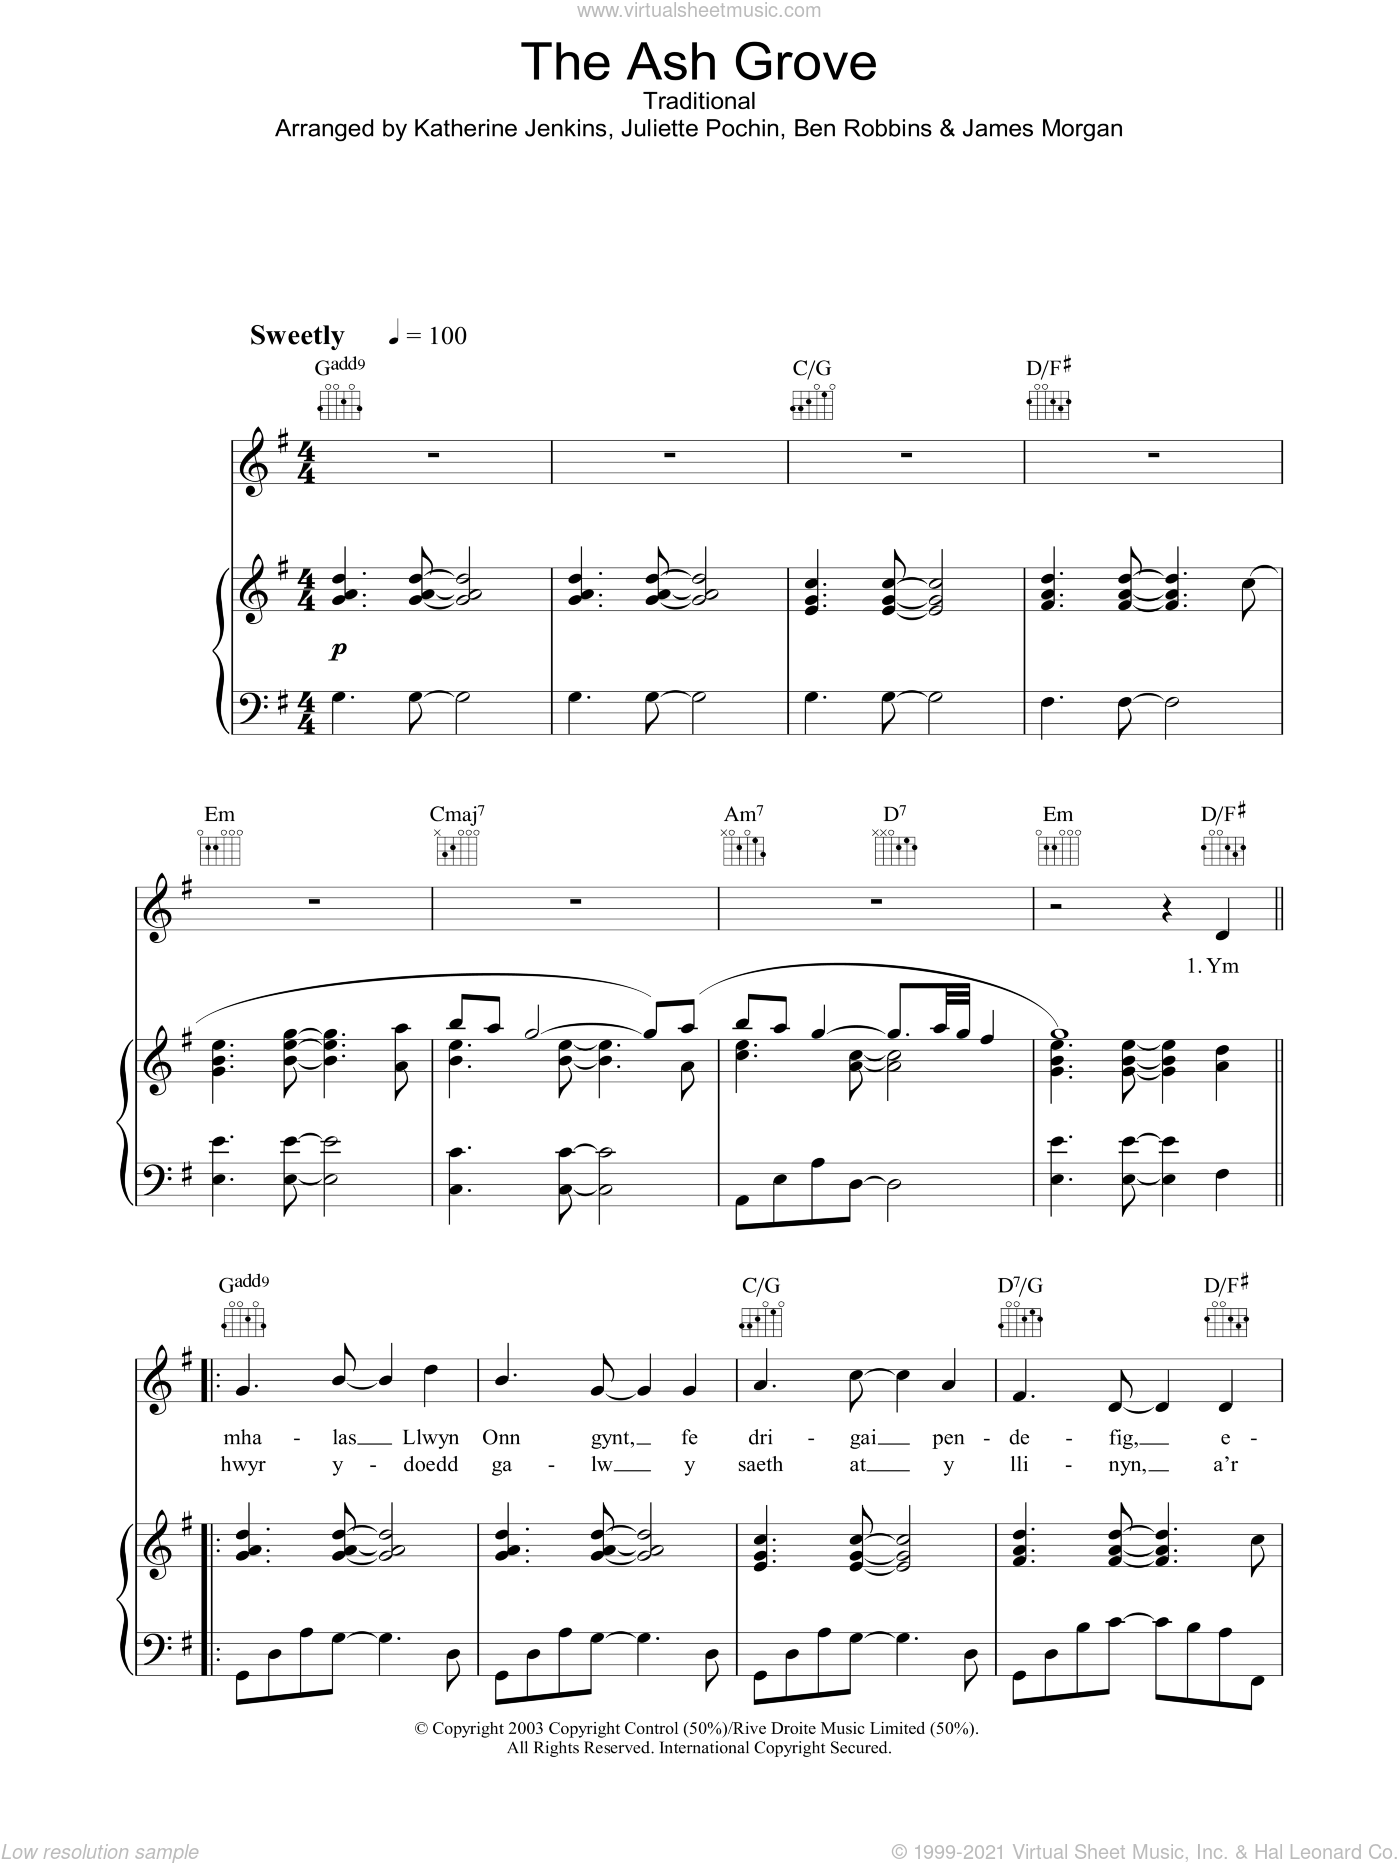 The Ash Grove sheet music for voice, piano or guitar